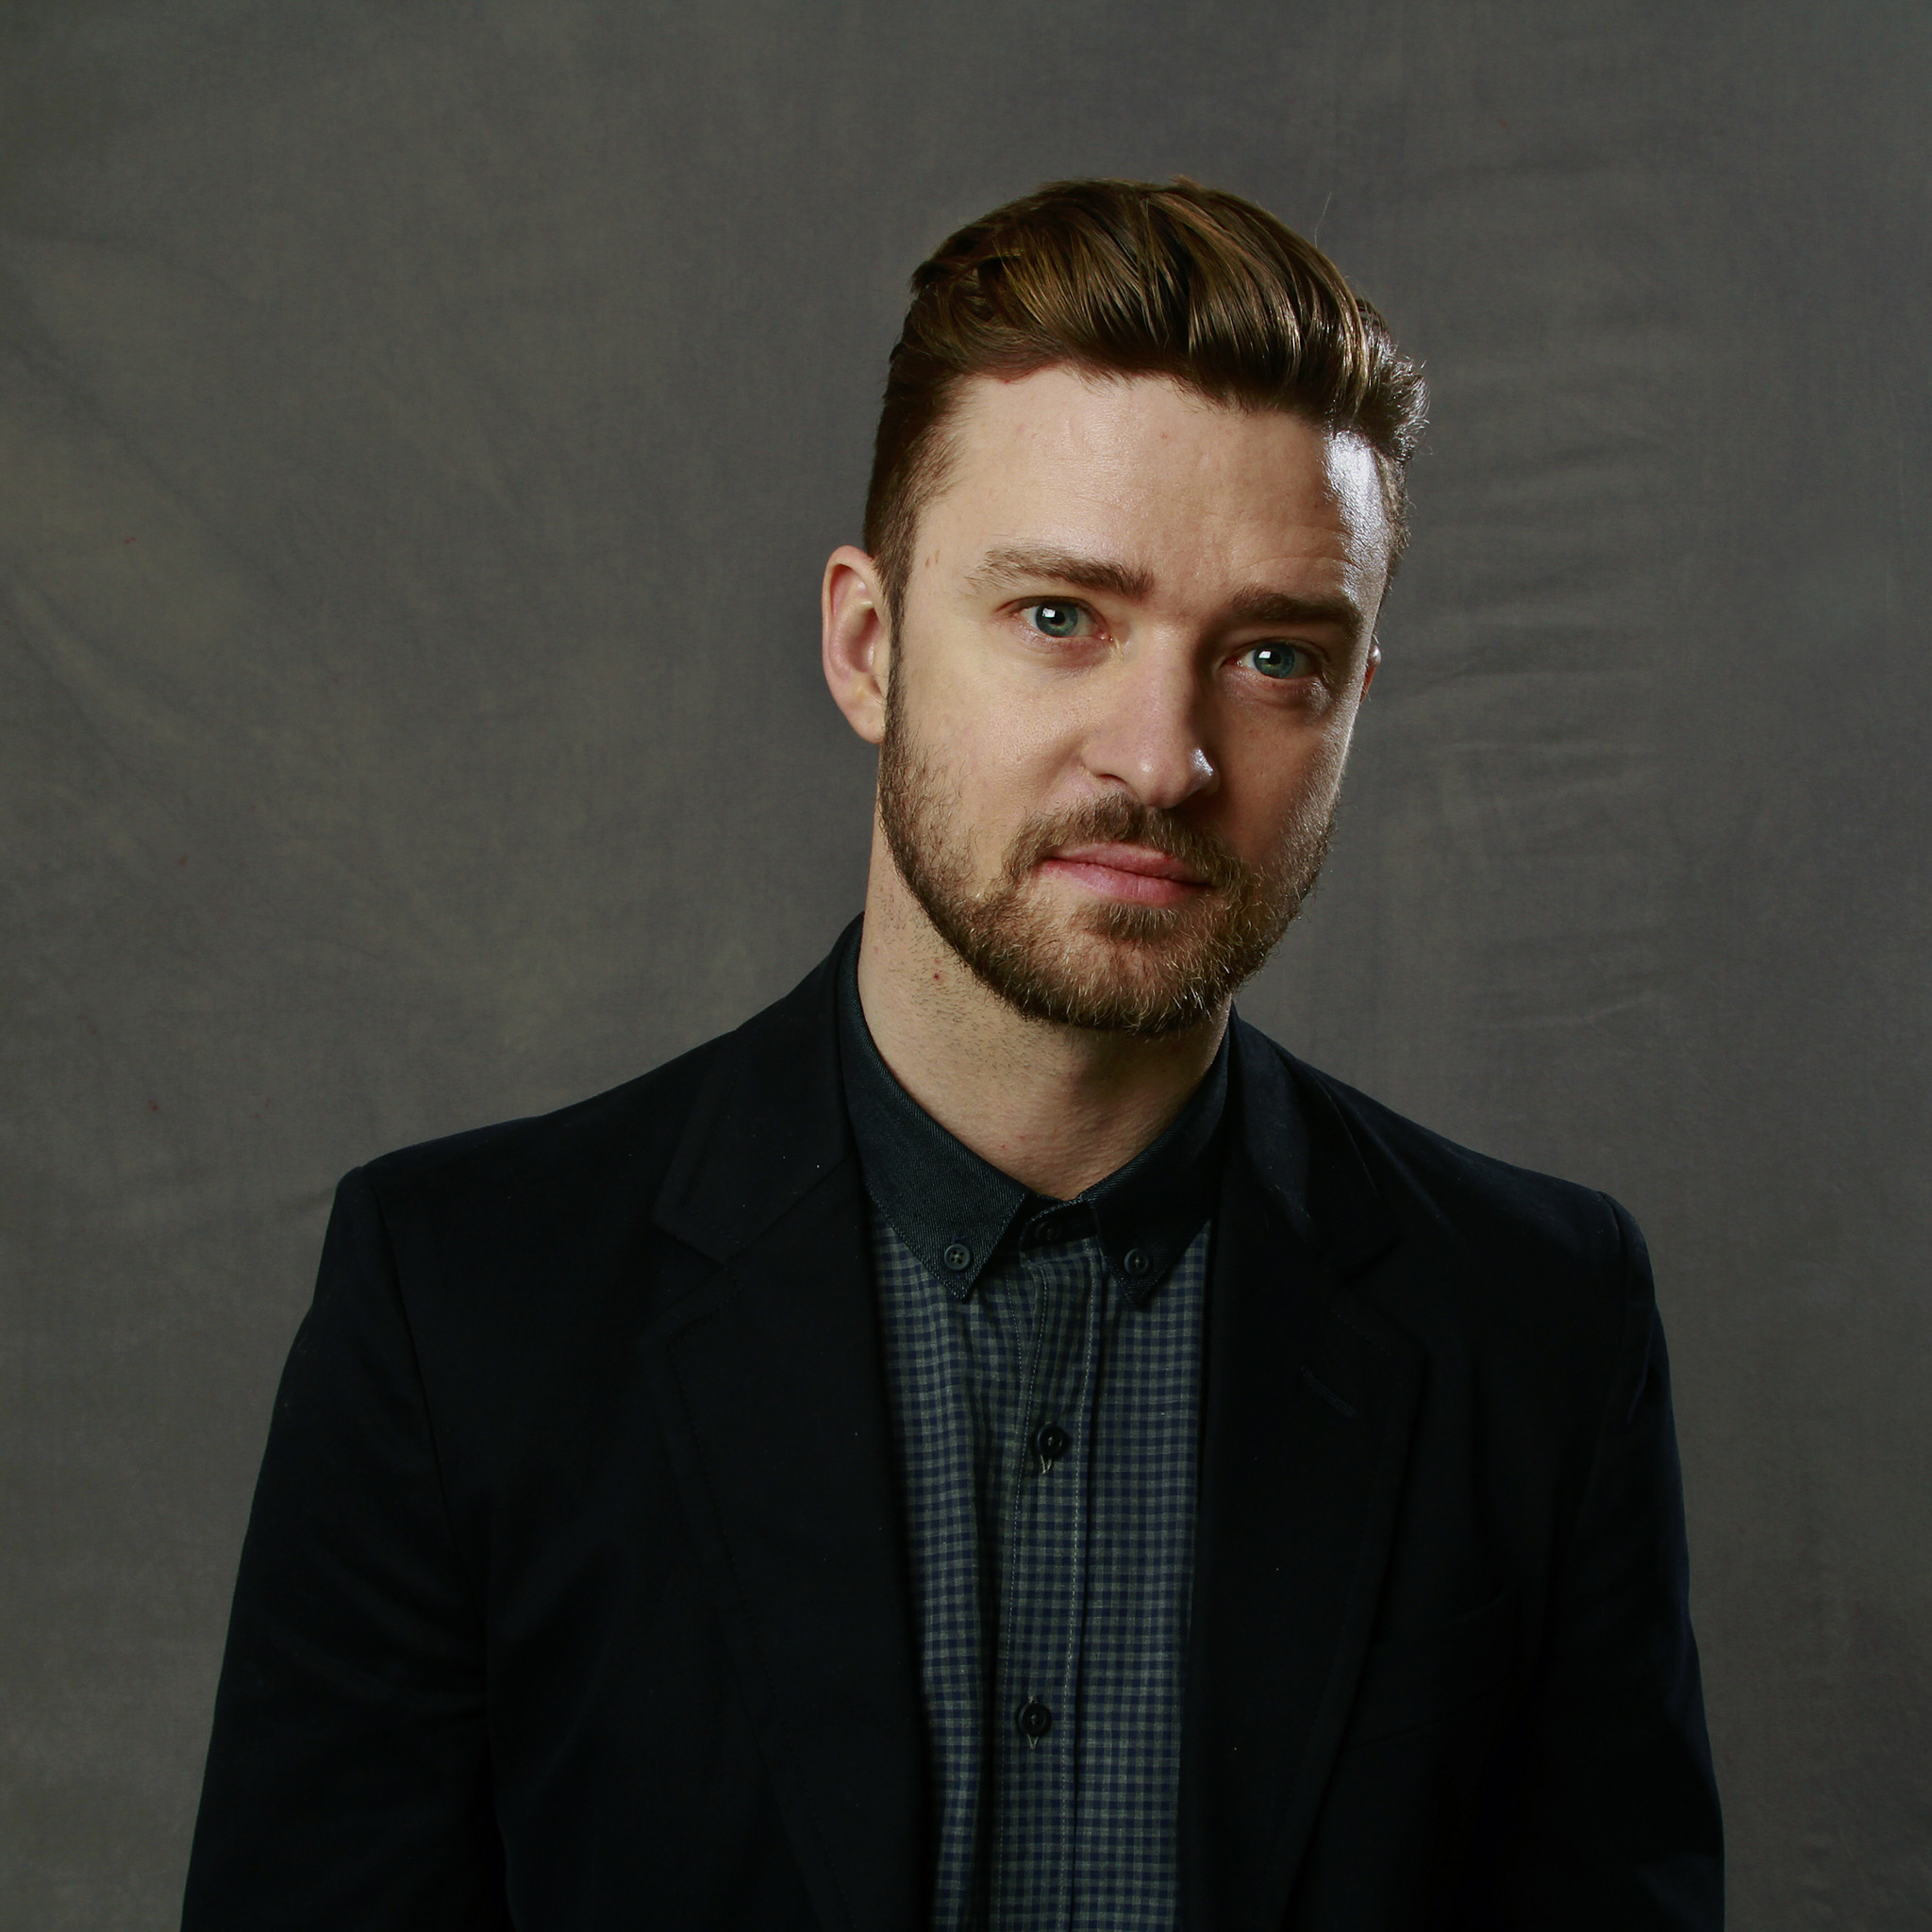 justin timberlake mirrorsjustin timberlake can't stop the feeling, justin timberlake dance, justin timberlake mirrors, justin timberlake песни, justin timberlake cry me a river, justin timberlake my love, justin timberlake what goes around скачать, justin timberlake dance скачать, justin timberlake can't stop the feeling lyrics, justin timberlake suit and tie, justin timberlake what goes around перевод, justin timberlake слушать, justin timberlake what goes around, justin timberlake tko, justin timberlake wife, justin timberlake suit and tie скачать, justin timberlake mirrors lyrics, justin timberlake my love скачать, justin timberlake rock your body, justin timberlake songs